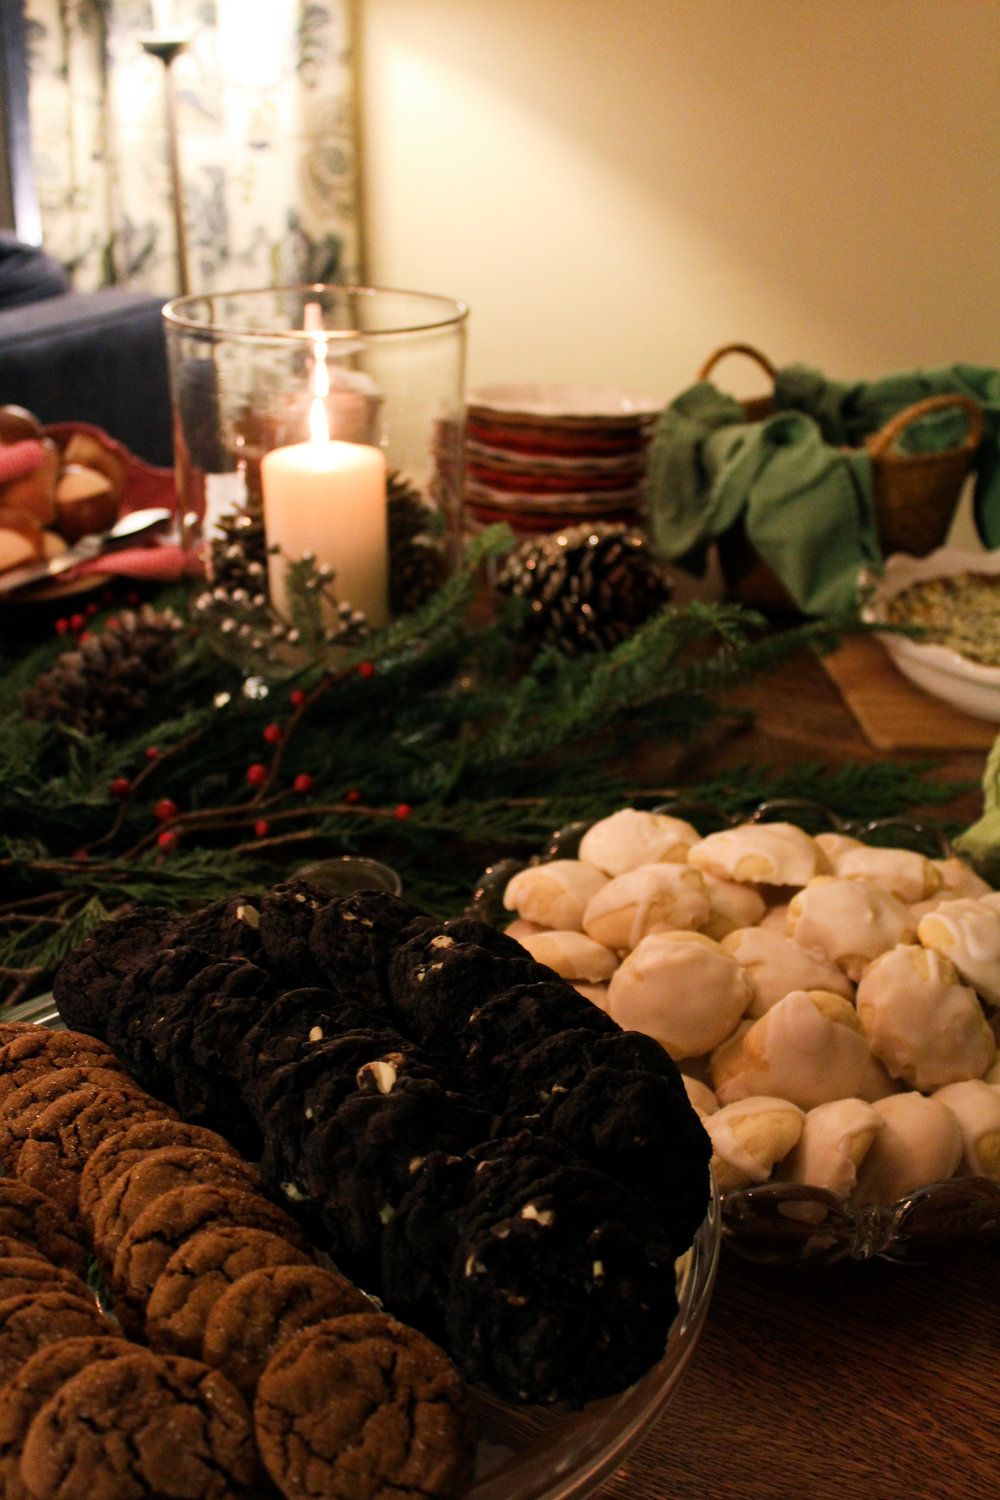 Amazing variety of holiday cookies brought by friends—molasses, peppermint chocolate chunk, and Italian lemon cookies.